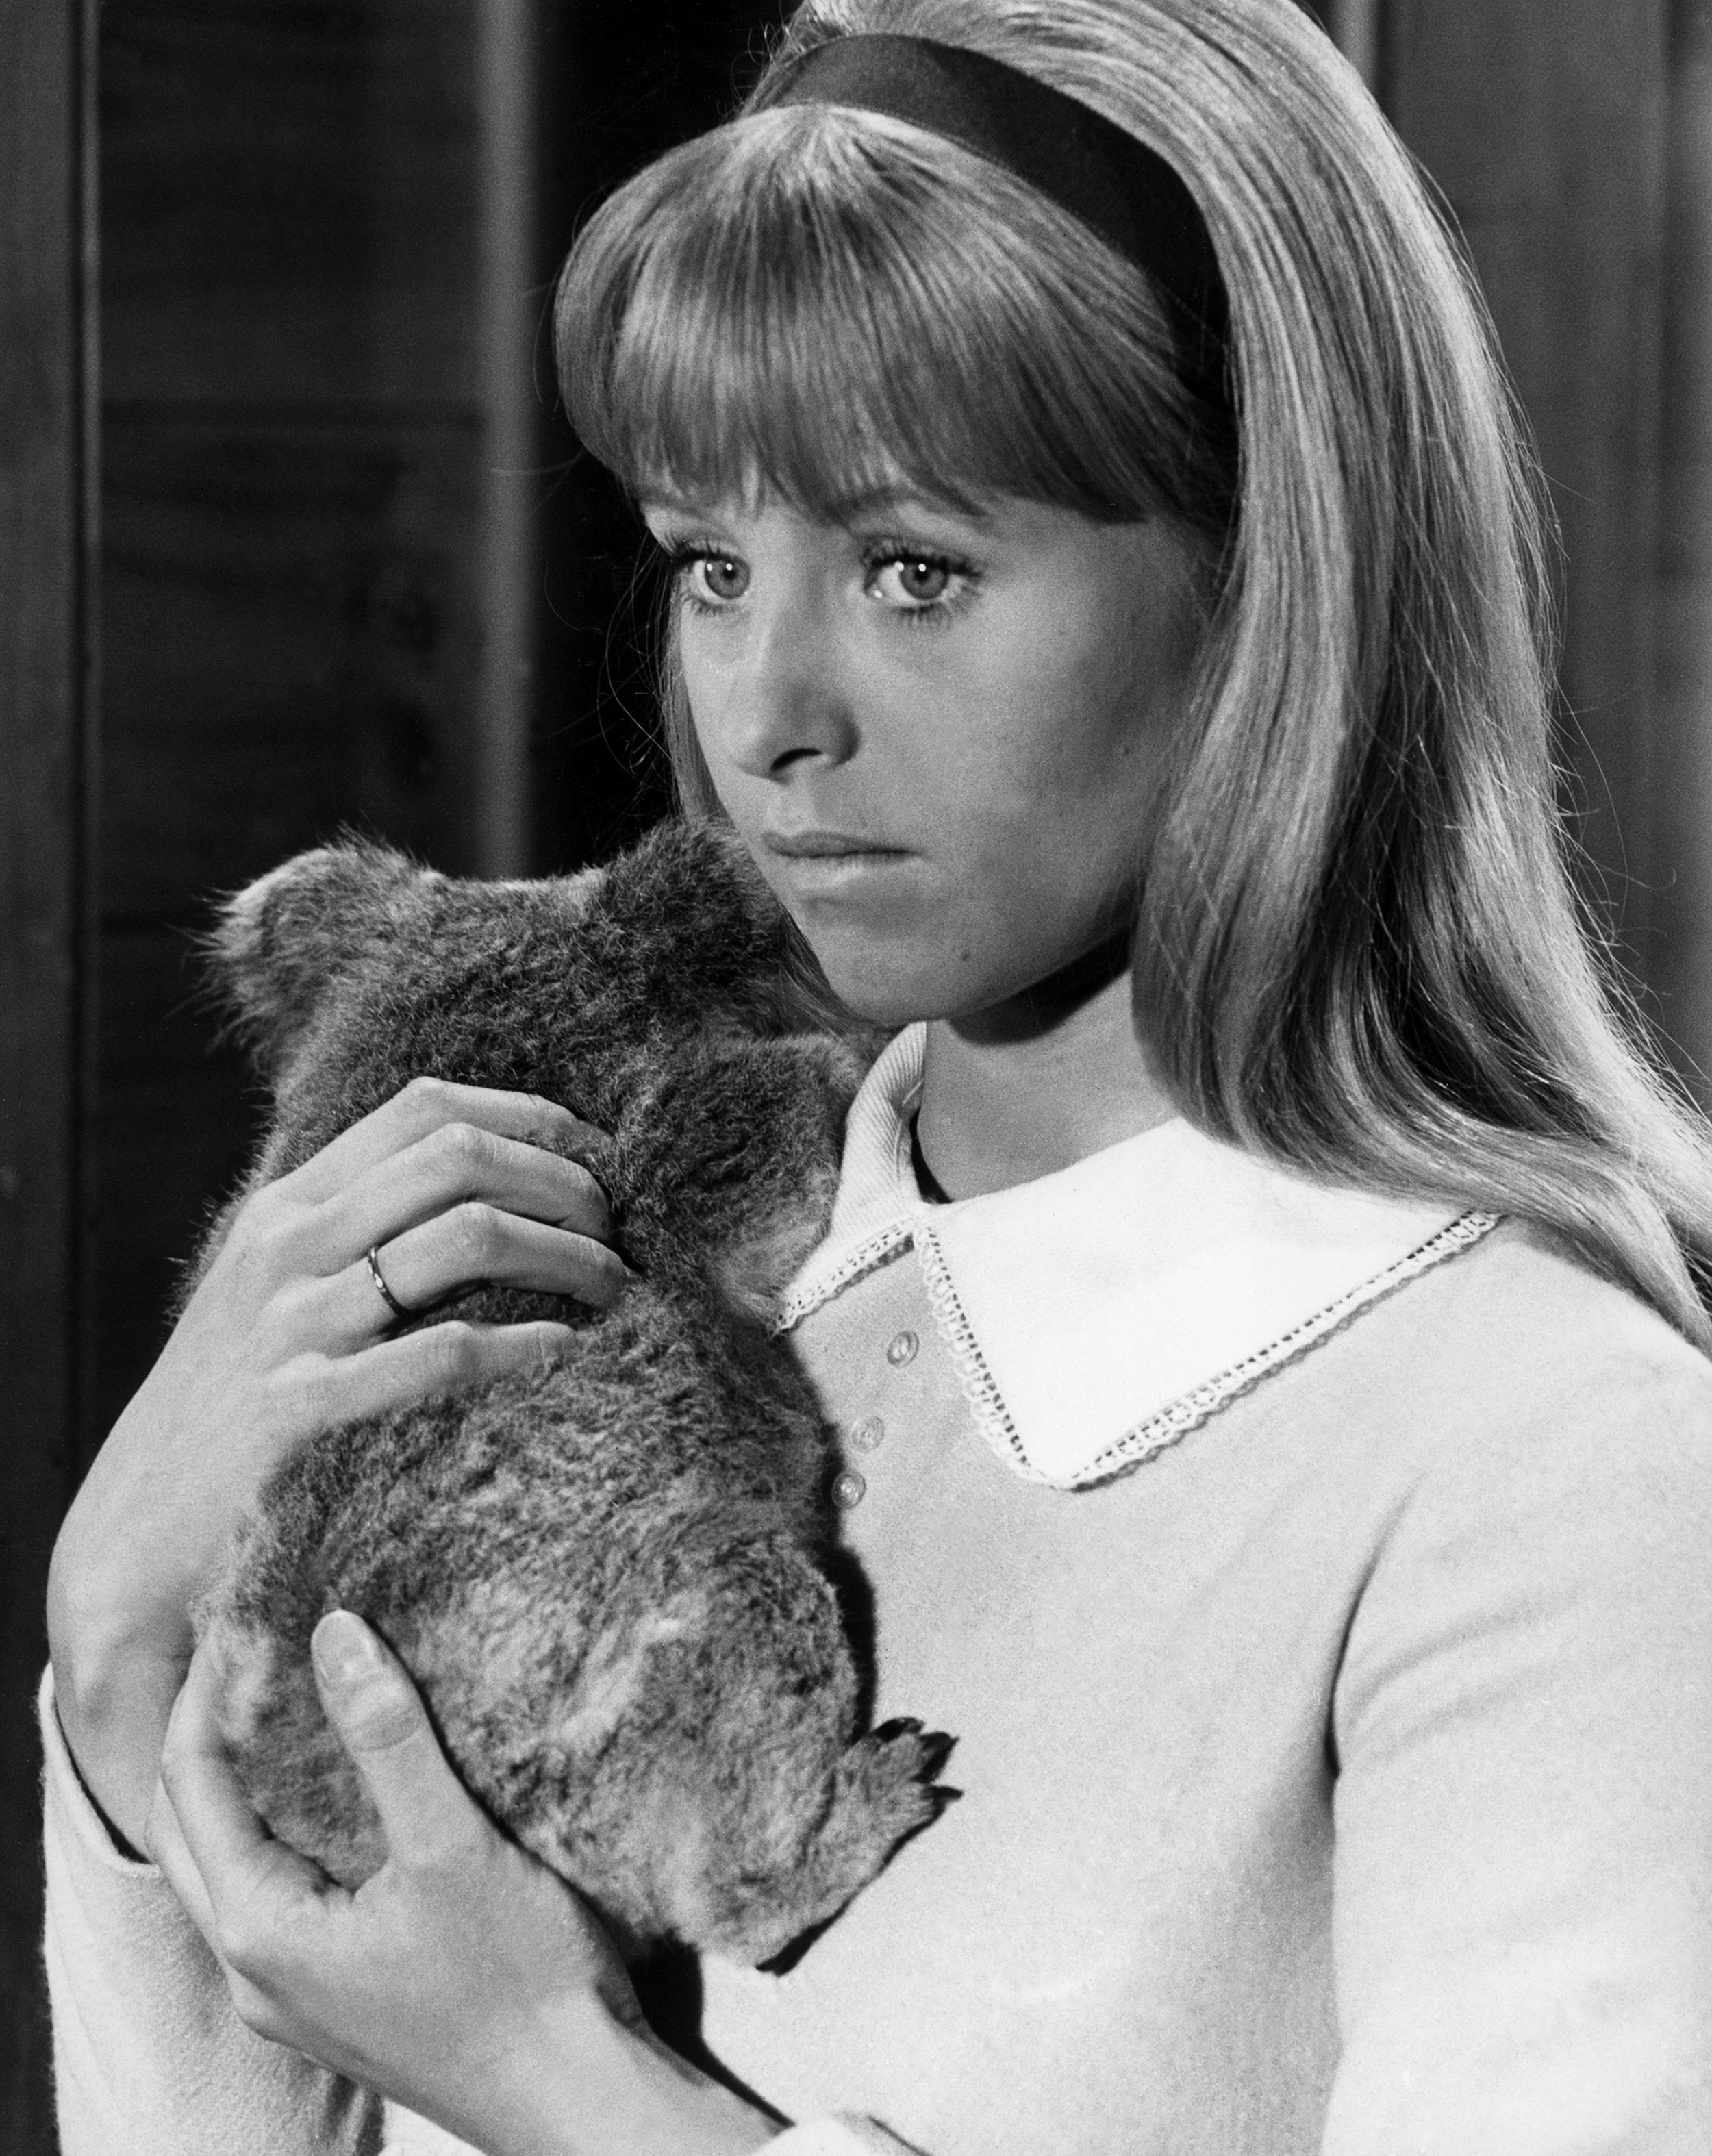 Liza Goddard as Clancy Merrick, who often found herself chasing escaping Roos